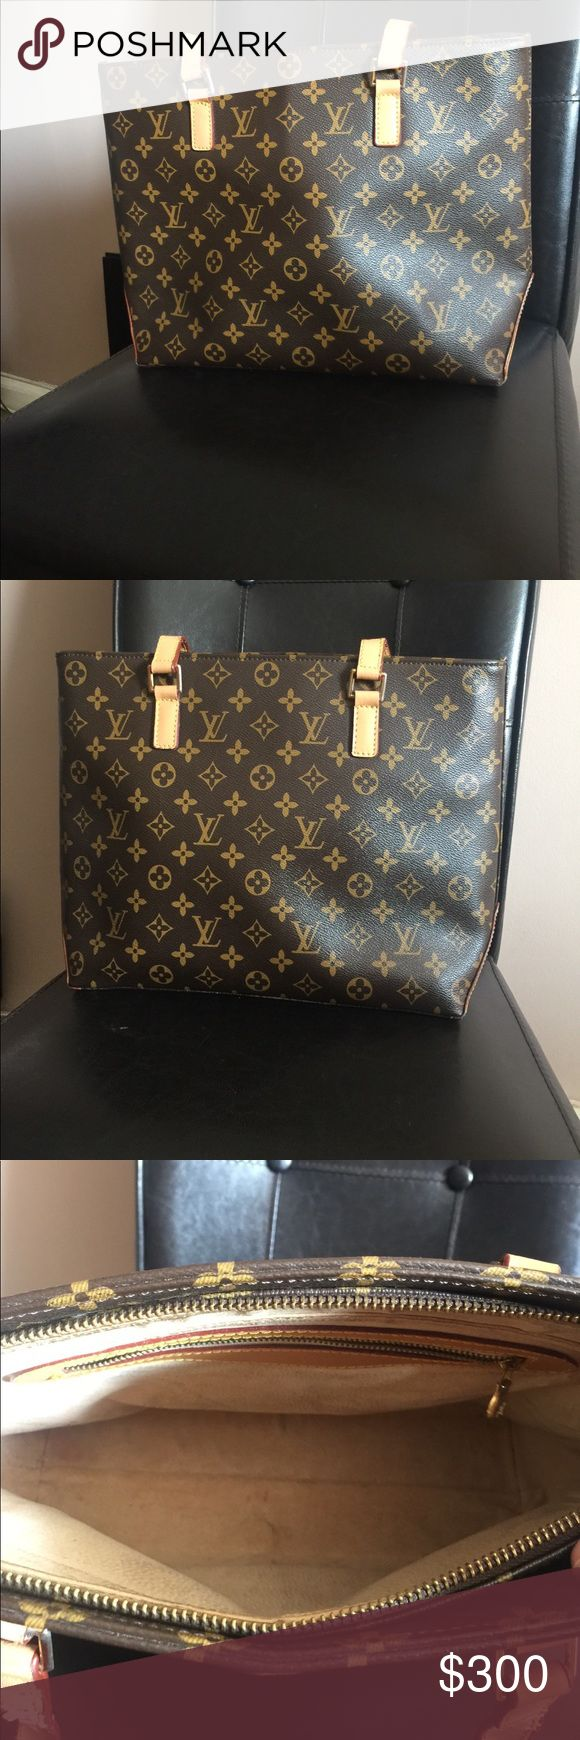 Authentic Louis Vuitton handbag Very nice and comfy Louis Vuitton handbag. A few blemishes inside and on straps. Otherwise in good condition. Smoke free and pet free home. Have to many bags and have to down size. Louis Vuitton Bags Shoulder Bags